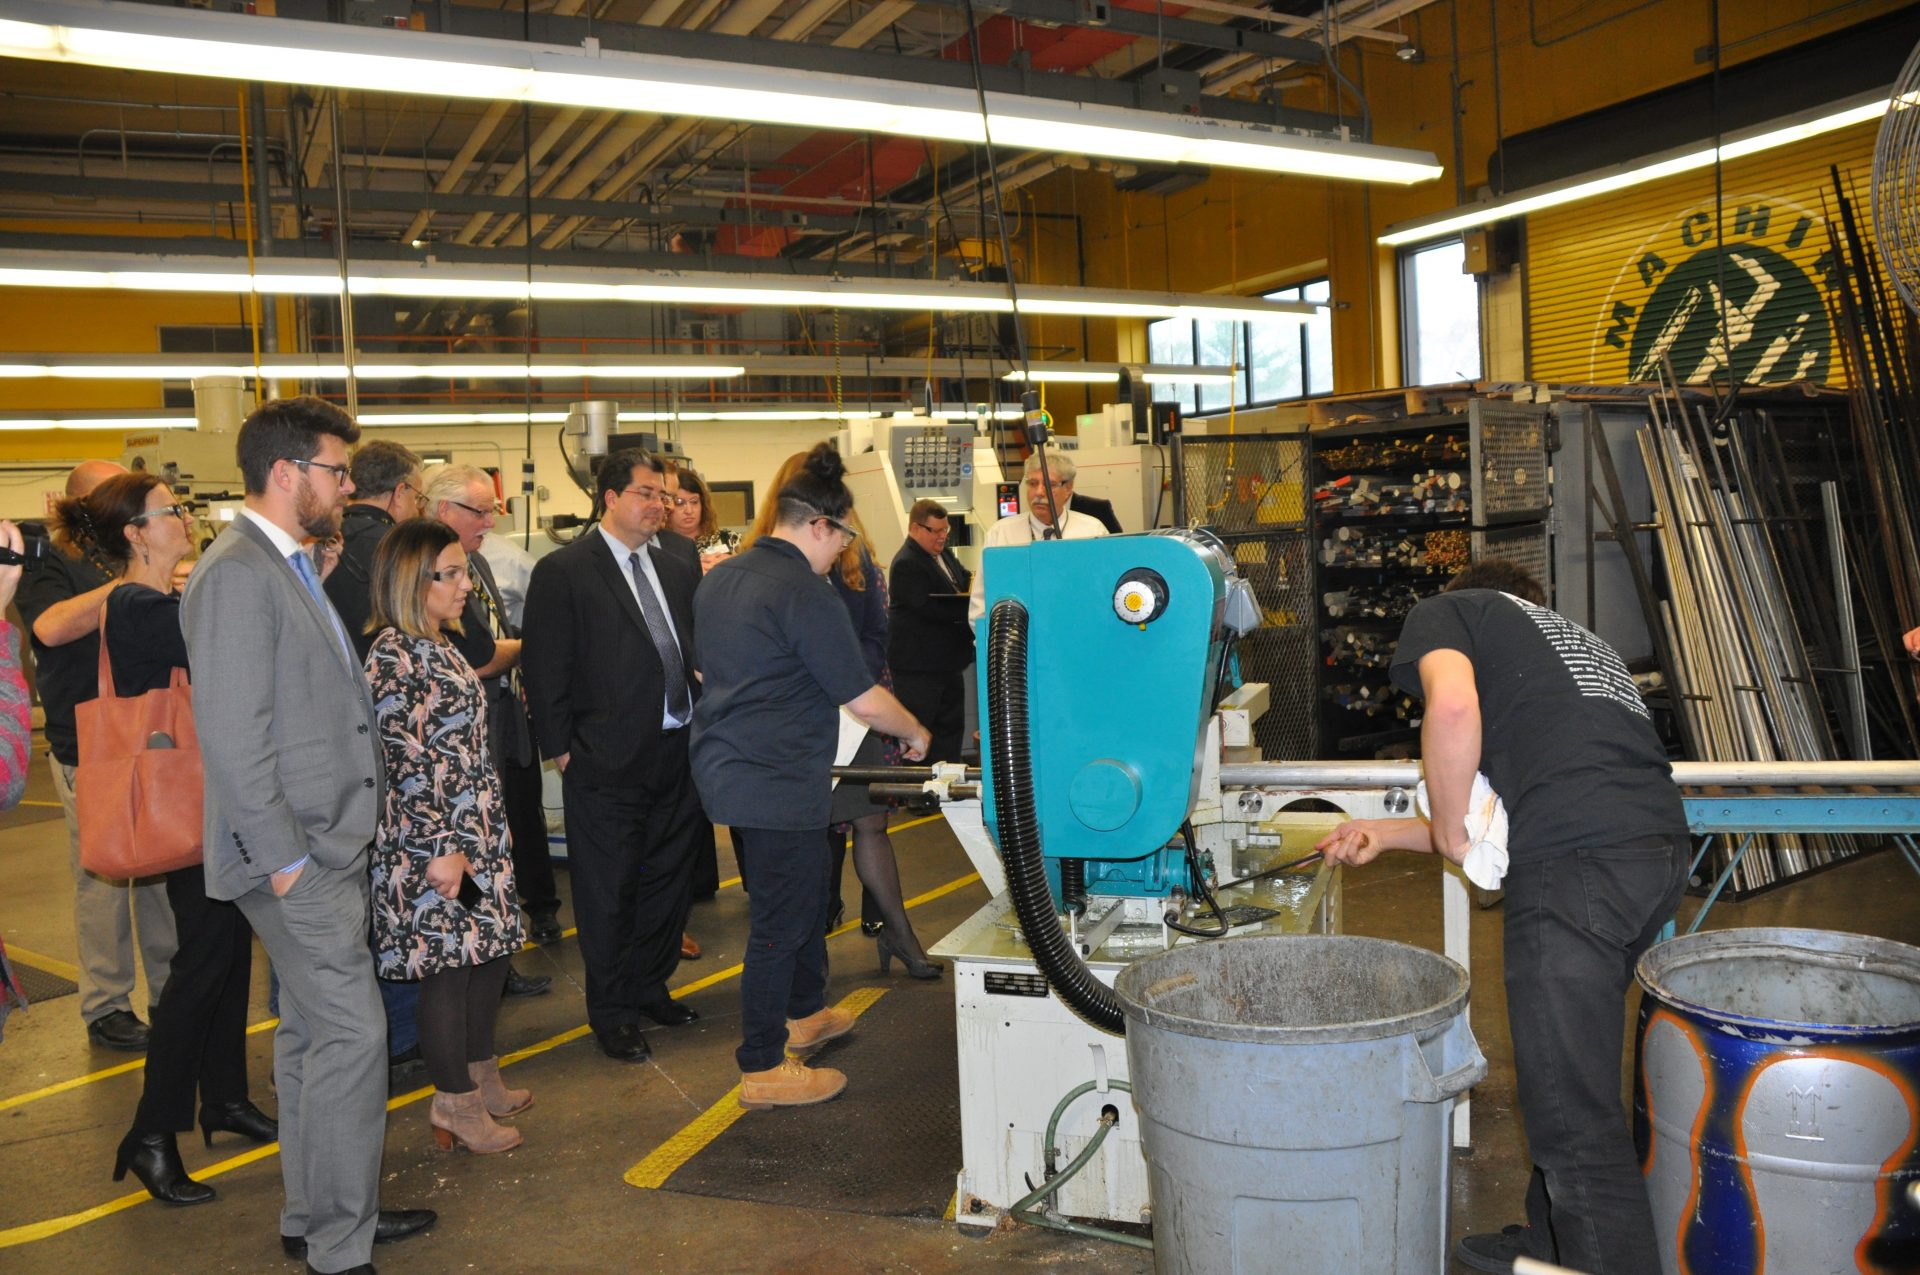 machine technology students showing adults how machine works